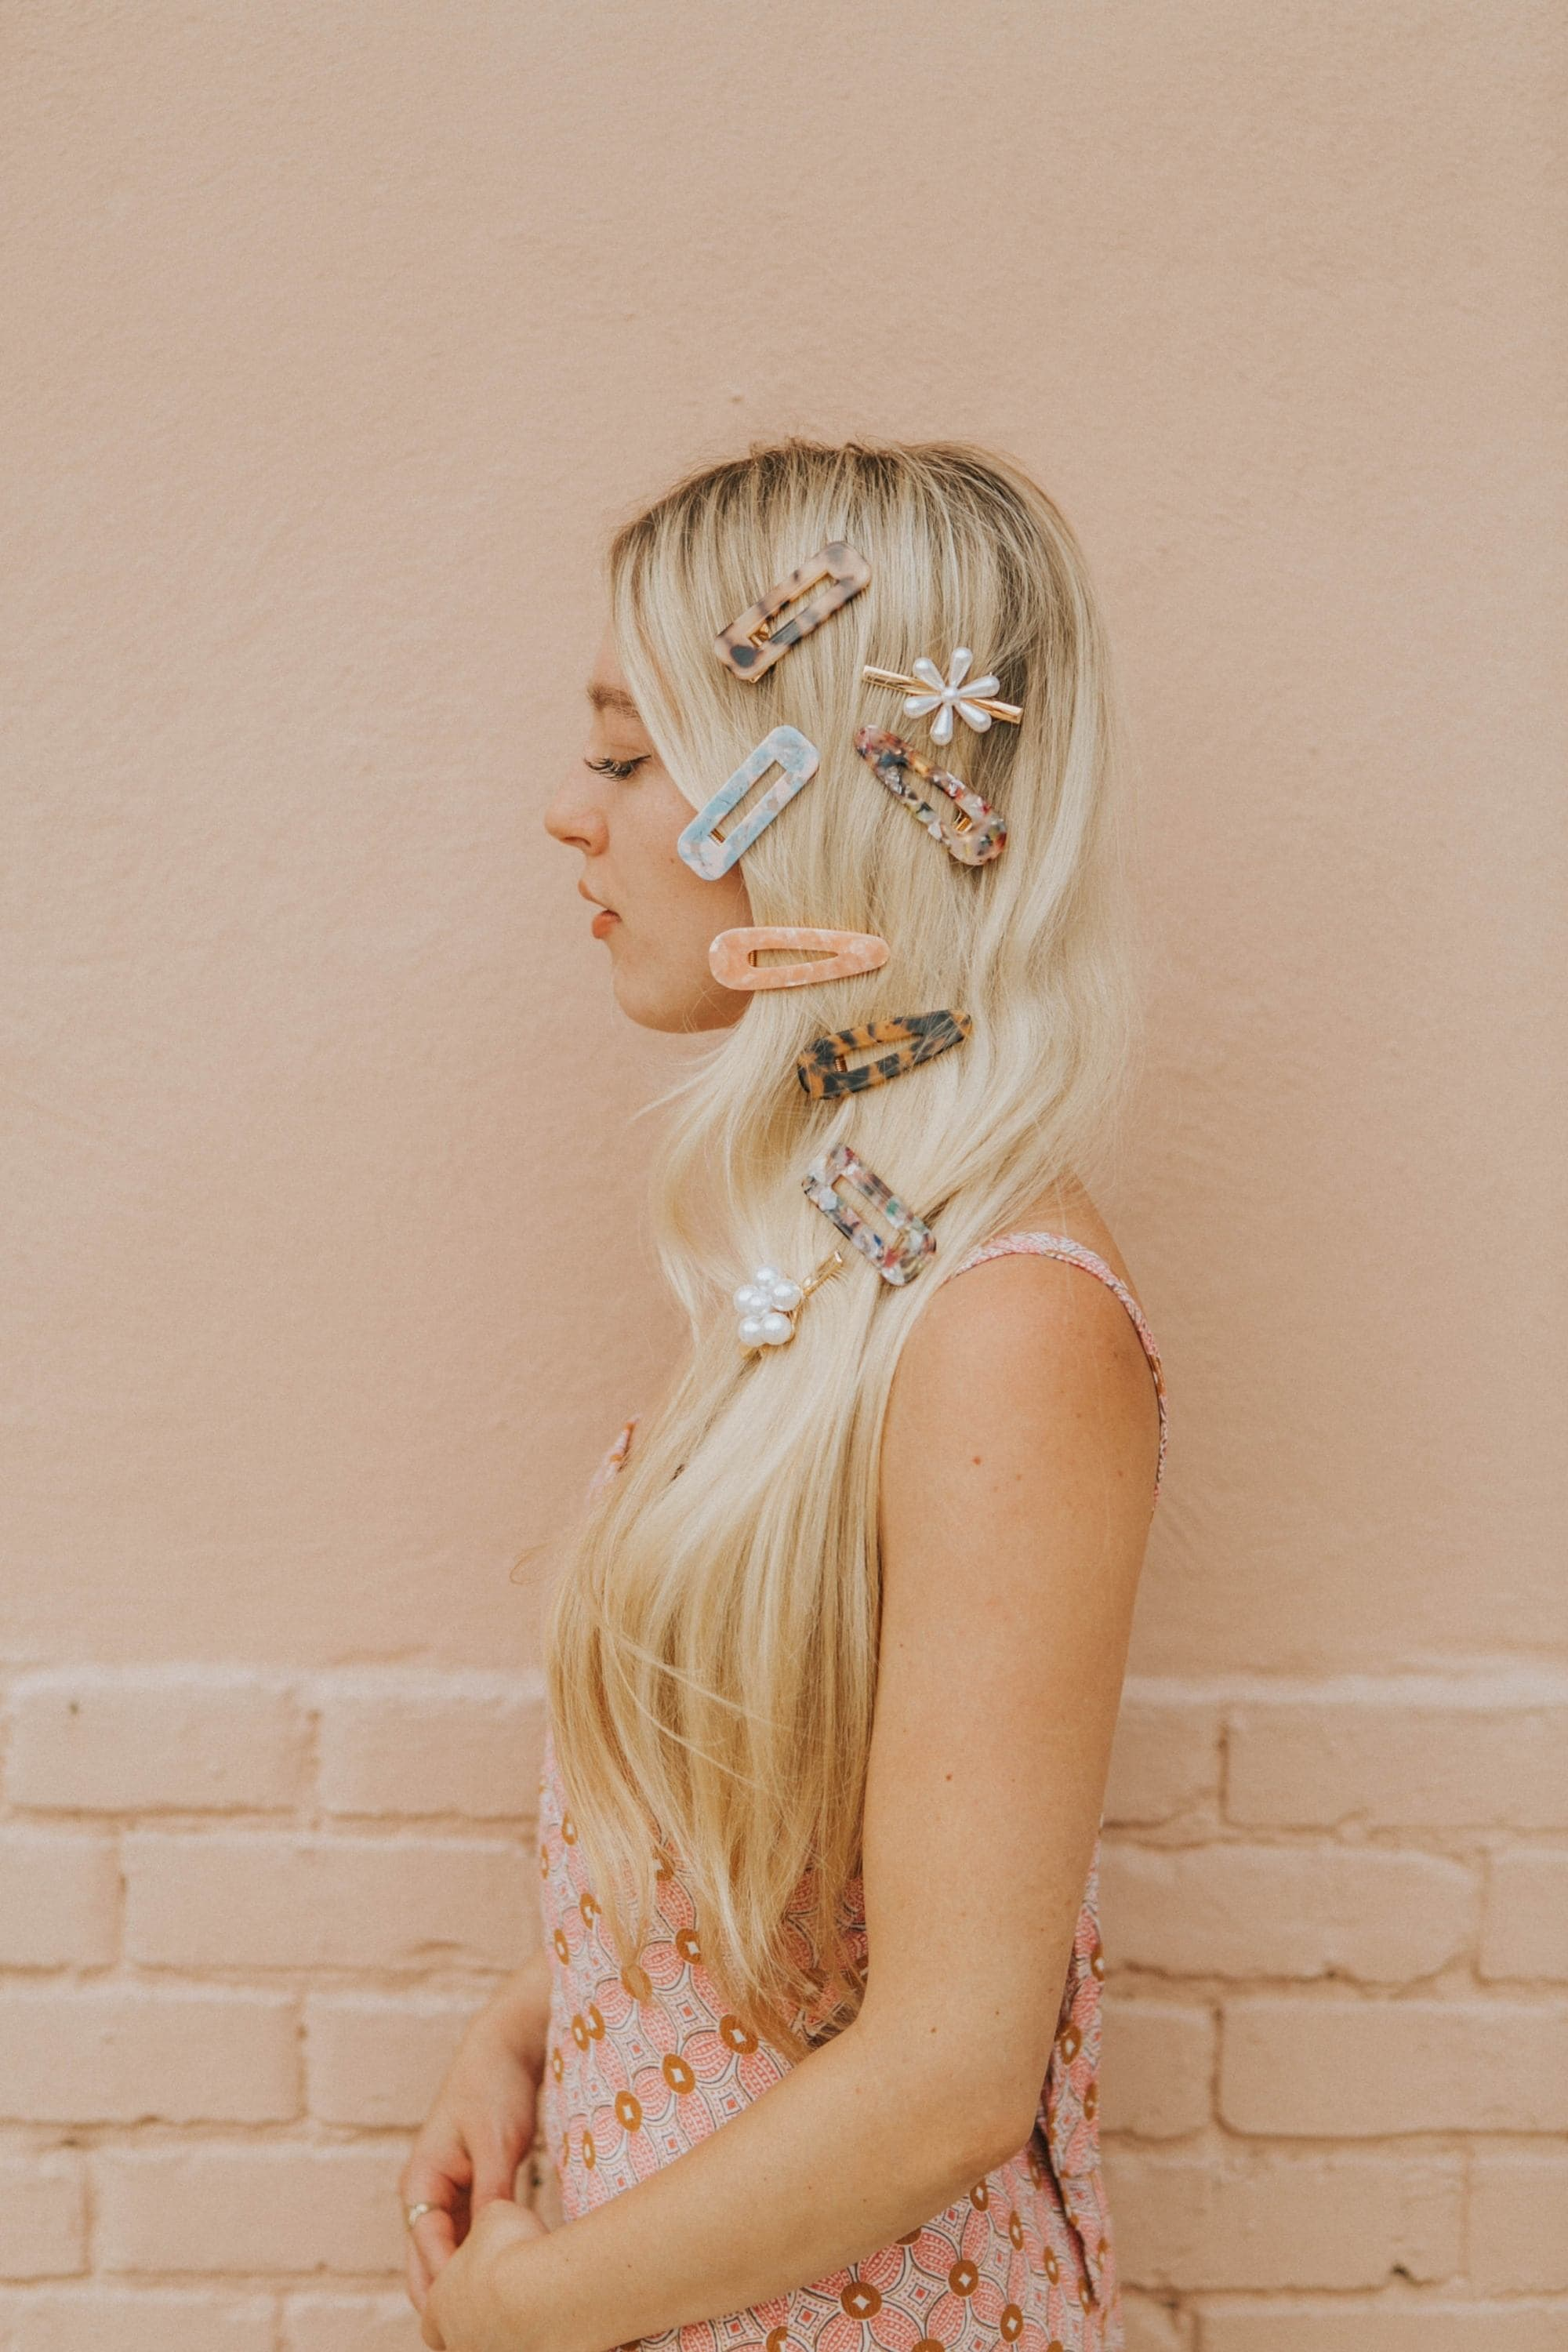 How to mix and match hair clips: a woman with a variety of hair clips on her blonde hair